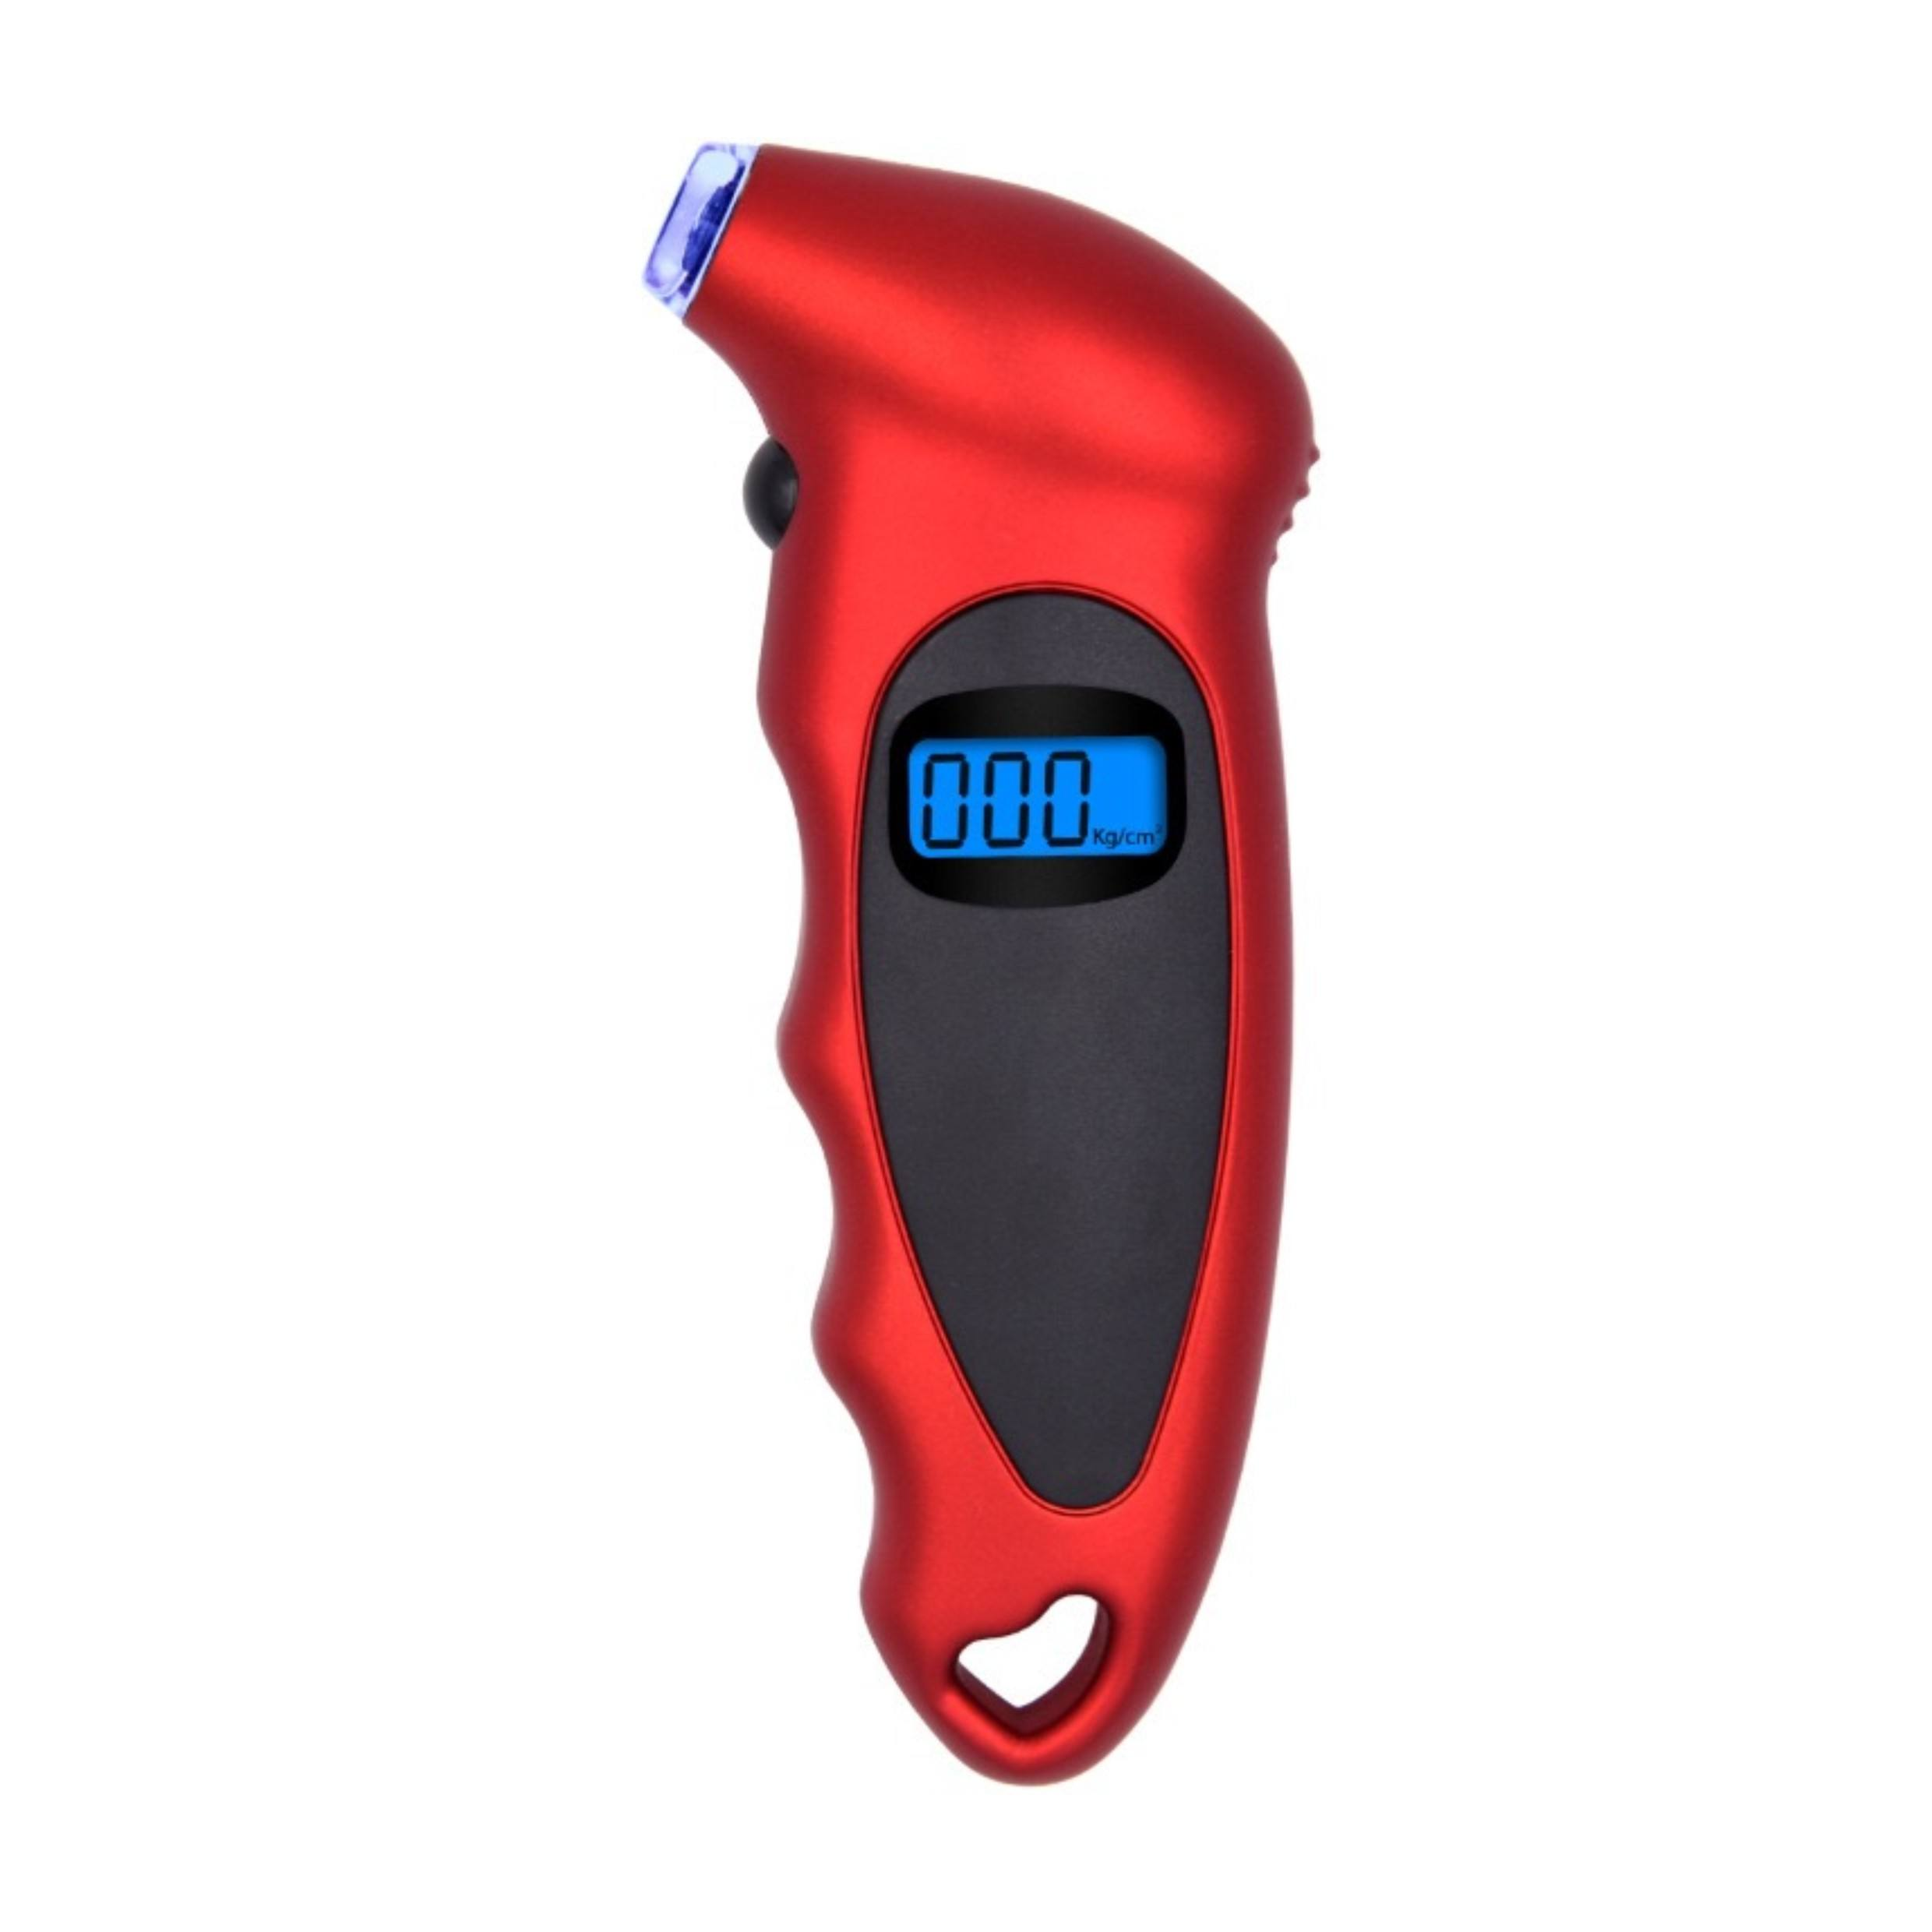 Hot Selling 100 PSI En Non-Slip Grip Auto Backlight Hoge precisie LCD Digitale Bandenspanningsmeter